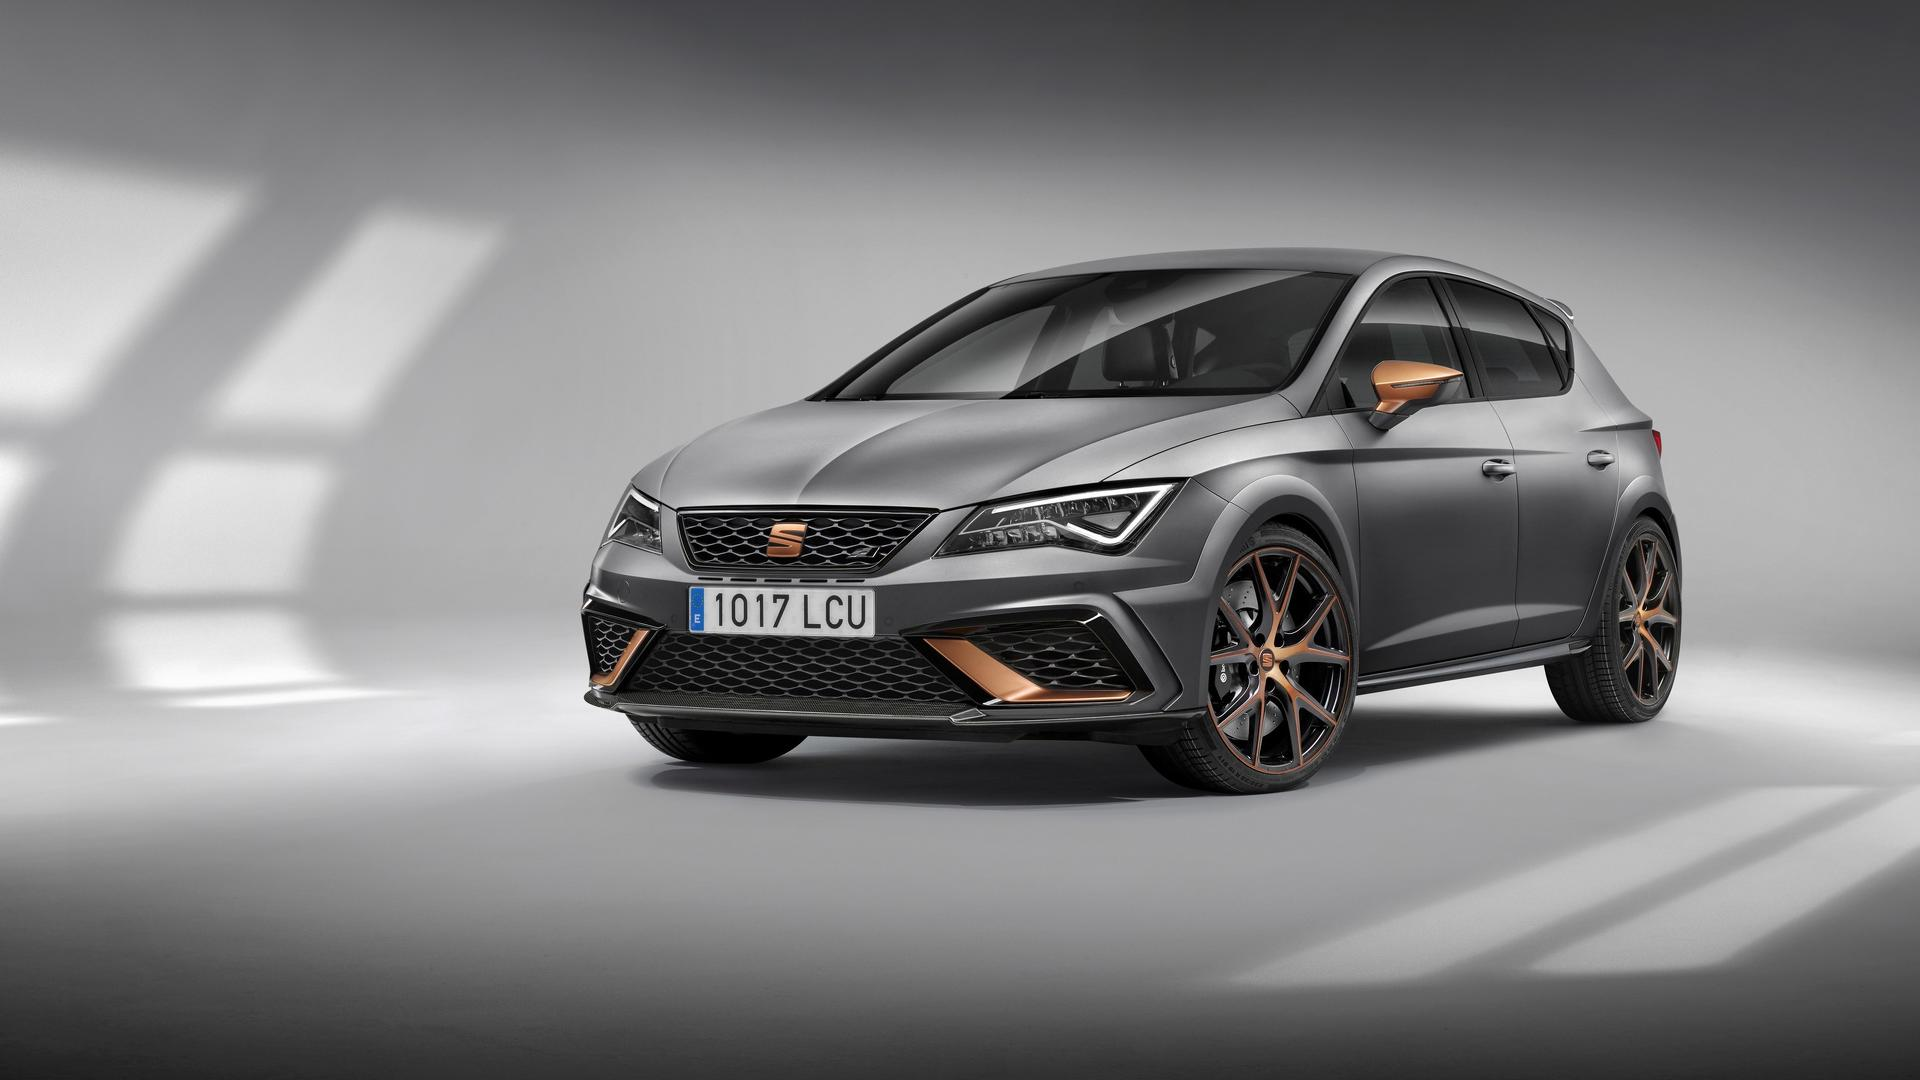 Exclusive new SEAT Leon Cupra R launches